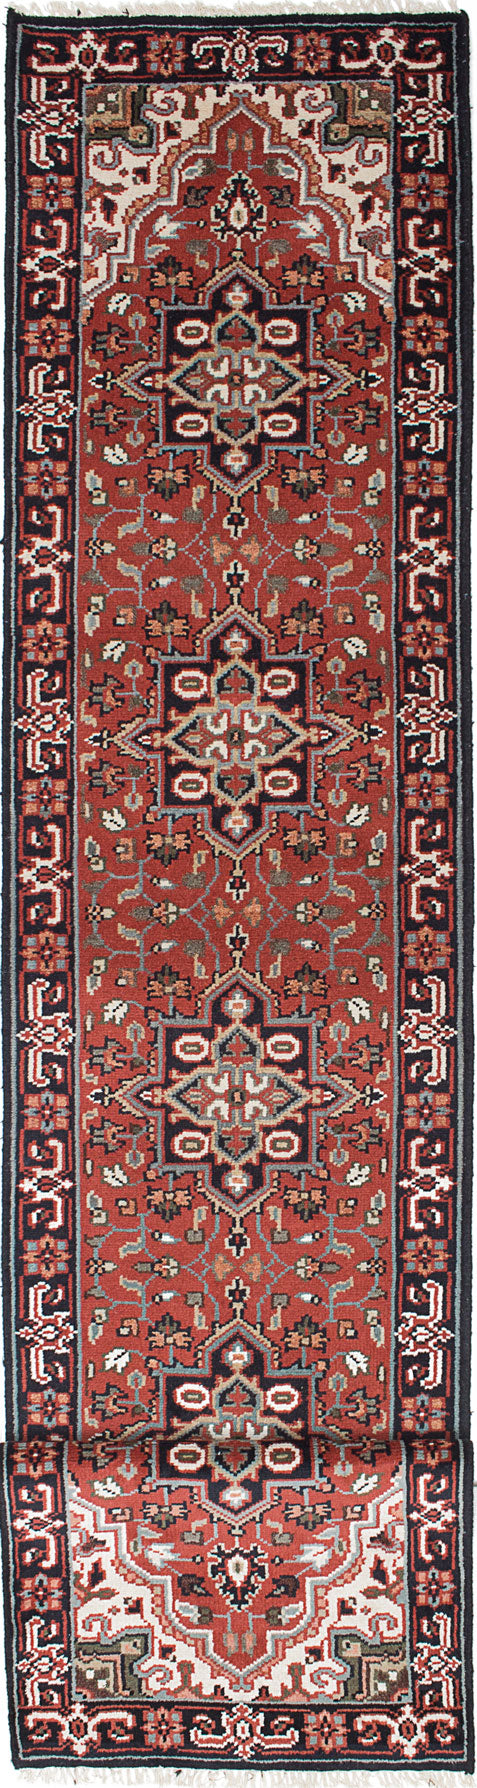 Hand-knotted Indian Geometric  Traditional Royal-Heriz Runner rug  Dark Red 2.6 x 19.9